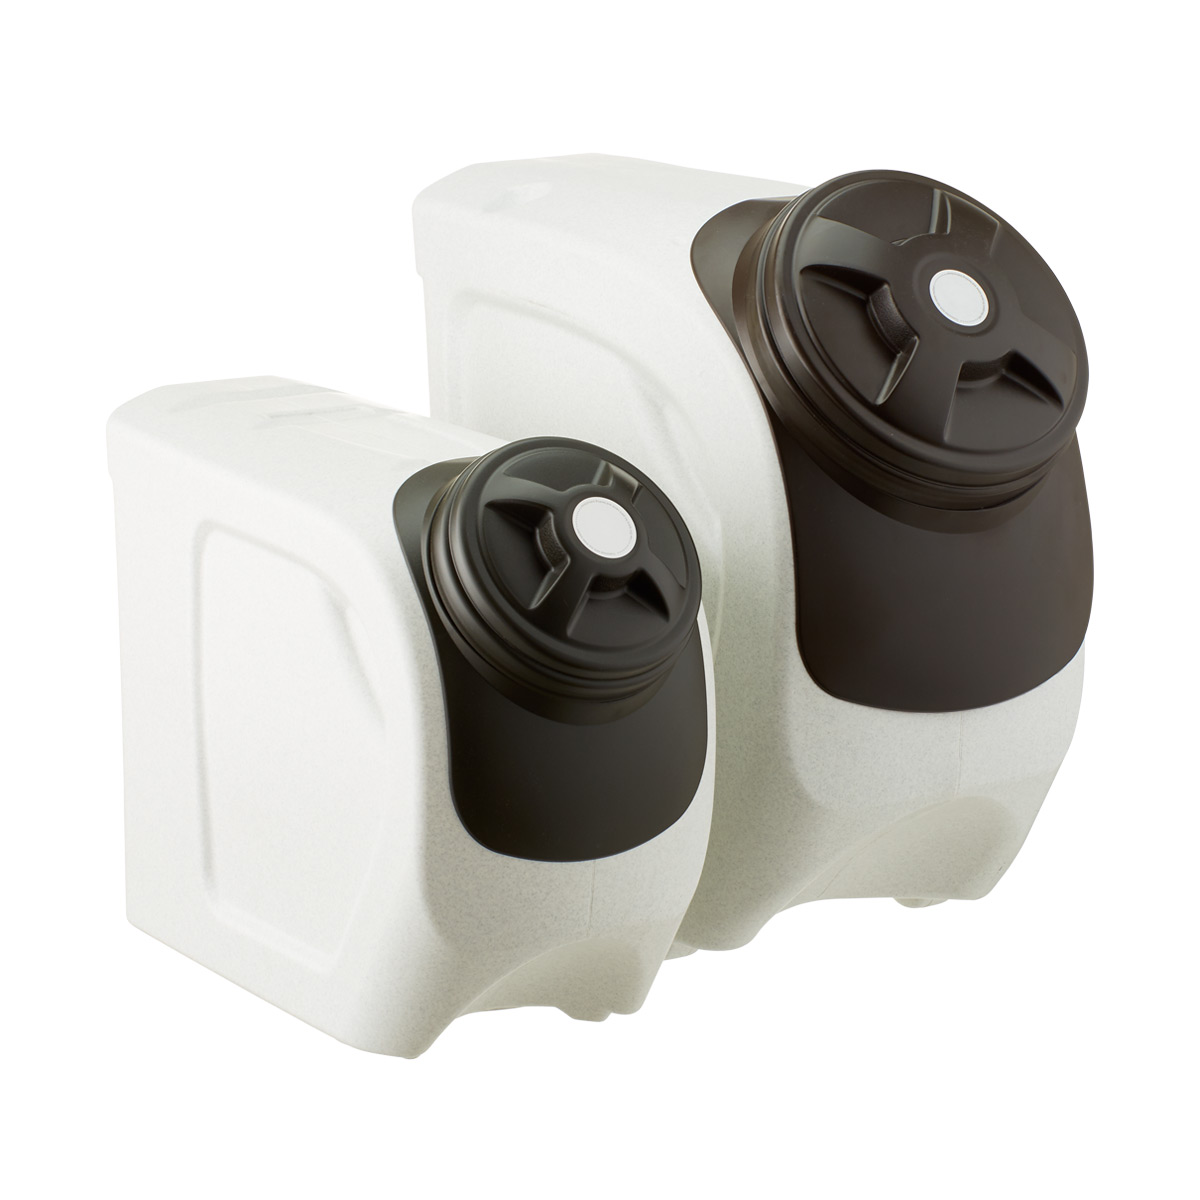 Vittles Vaults Dry Food Storage Containers